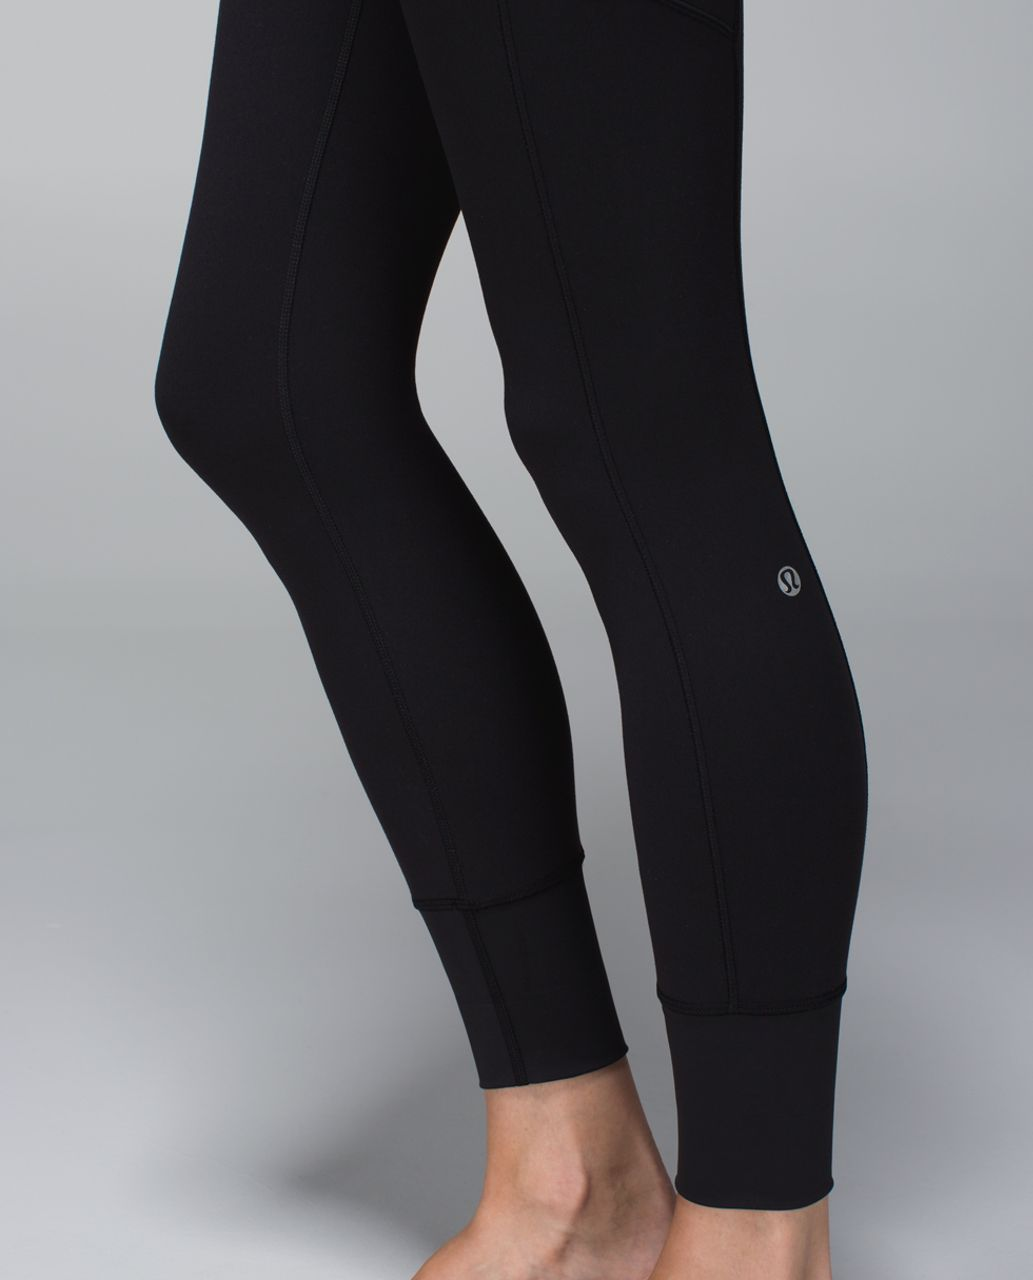 Lululemon En Route Crop *Full-On Luon - Black